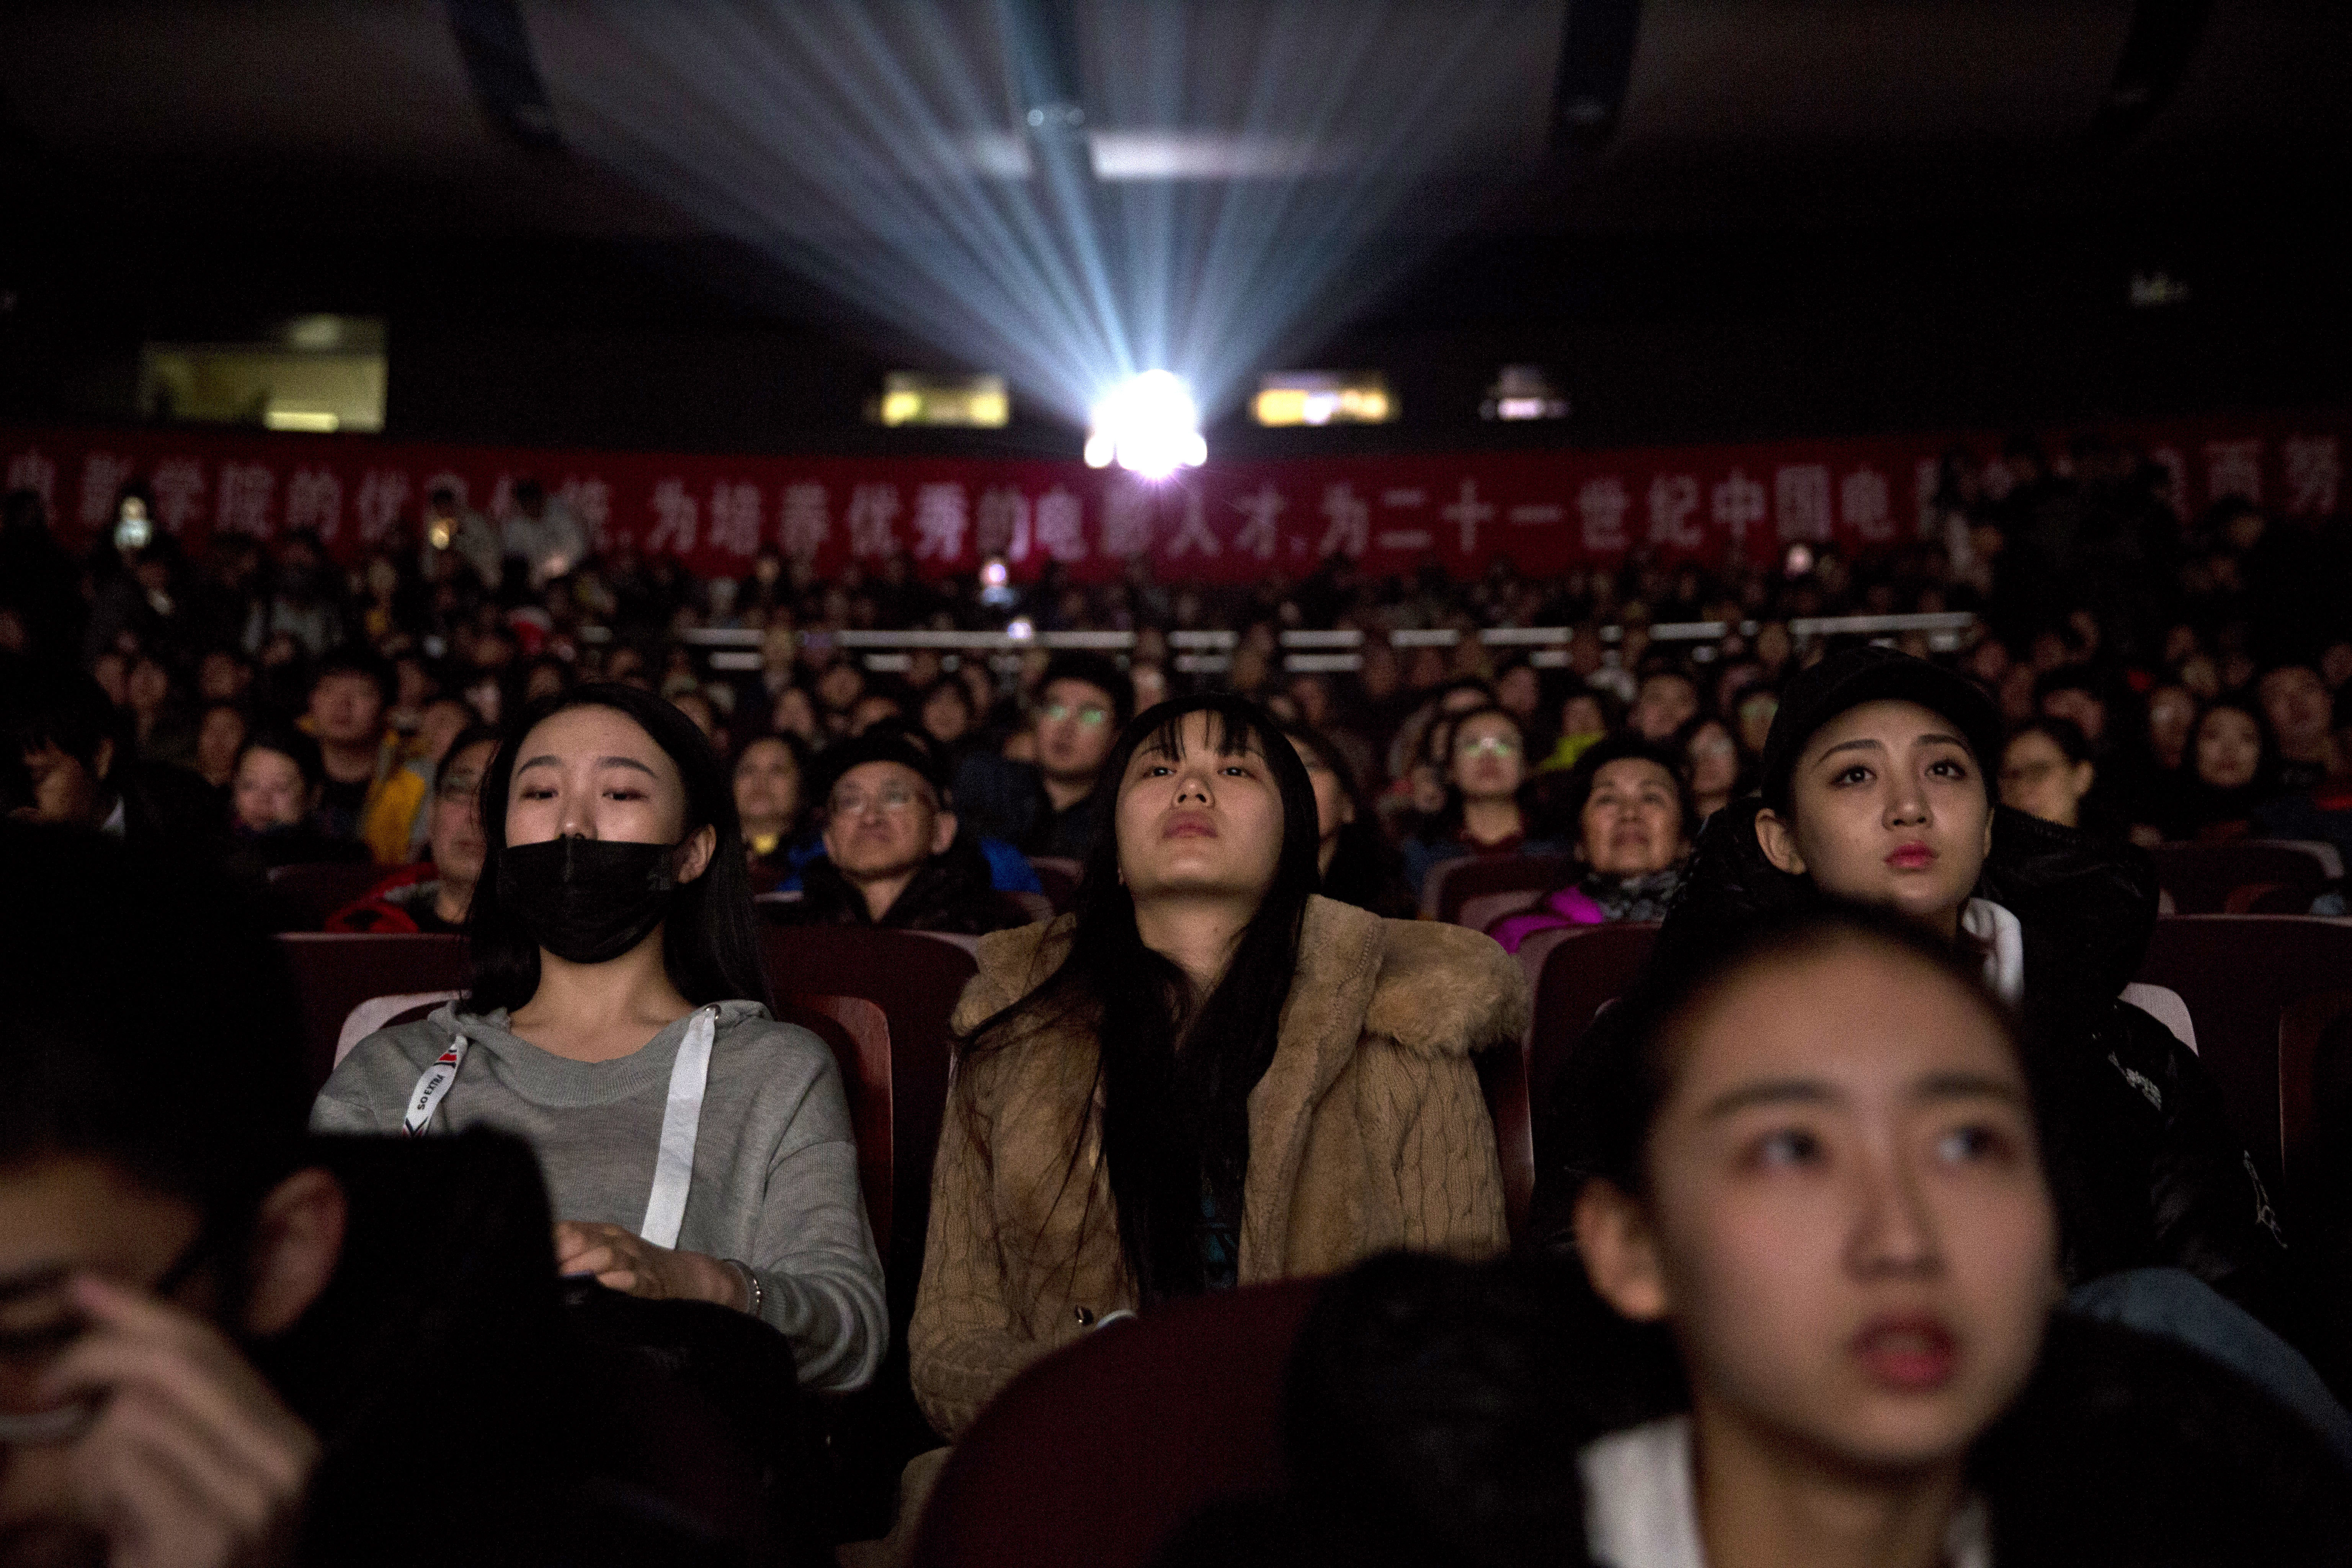 """Audience members watch a screening of the state-backed documentary """"Amazing China"""" at the Beijing Film Academy in Beijing, China, March 22, 2018."""